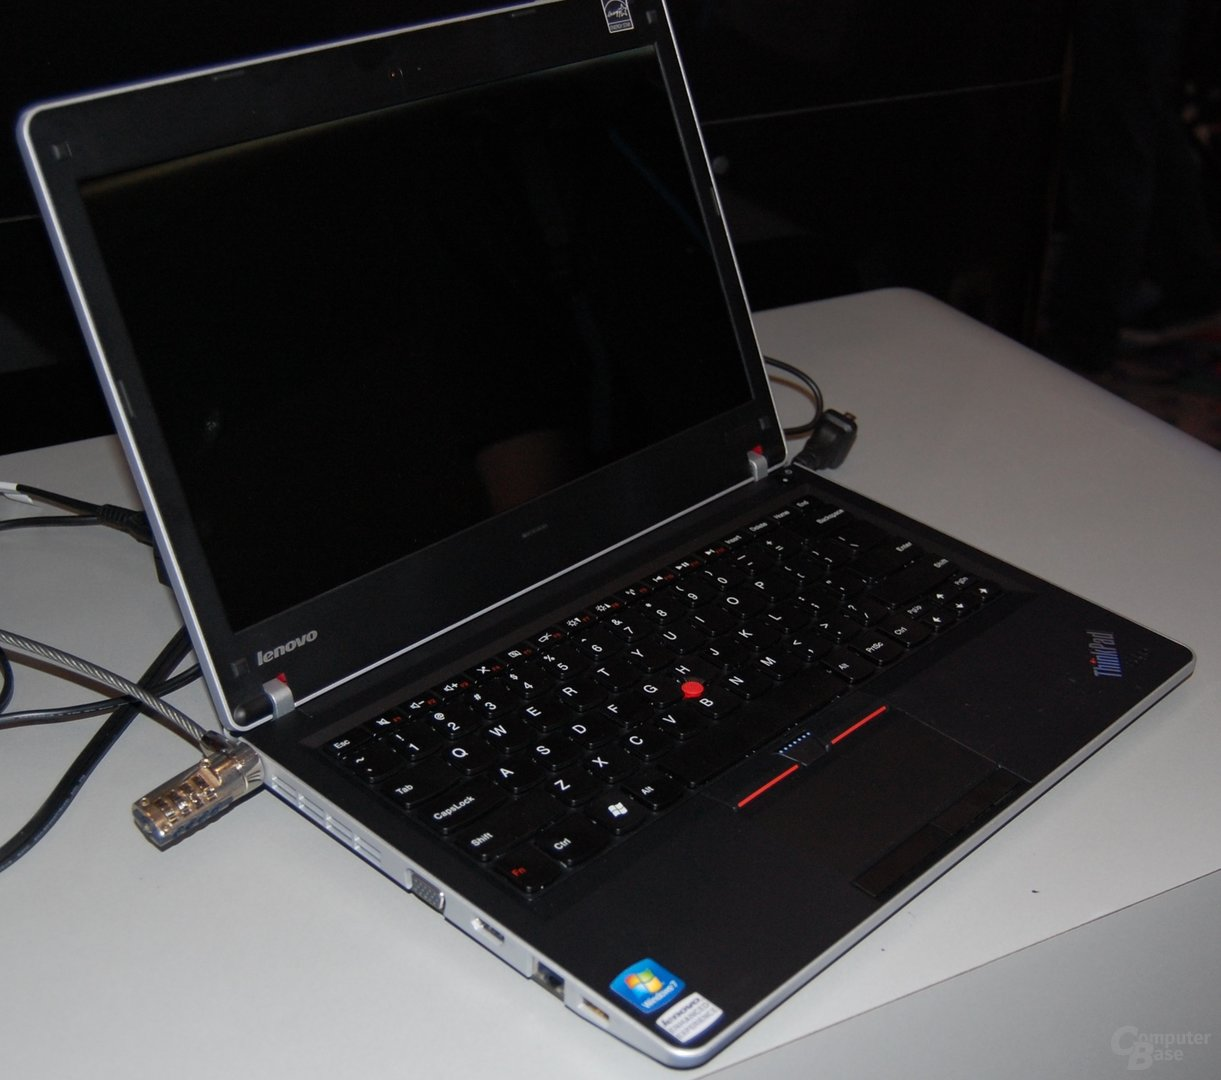 Lenovo Thinkpad x100e und Edge